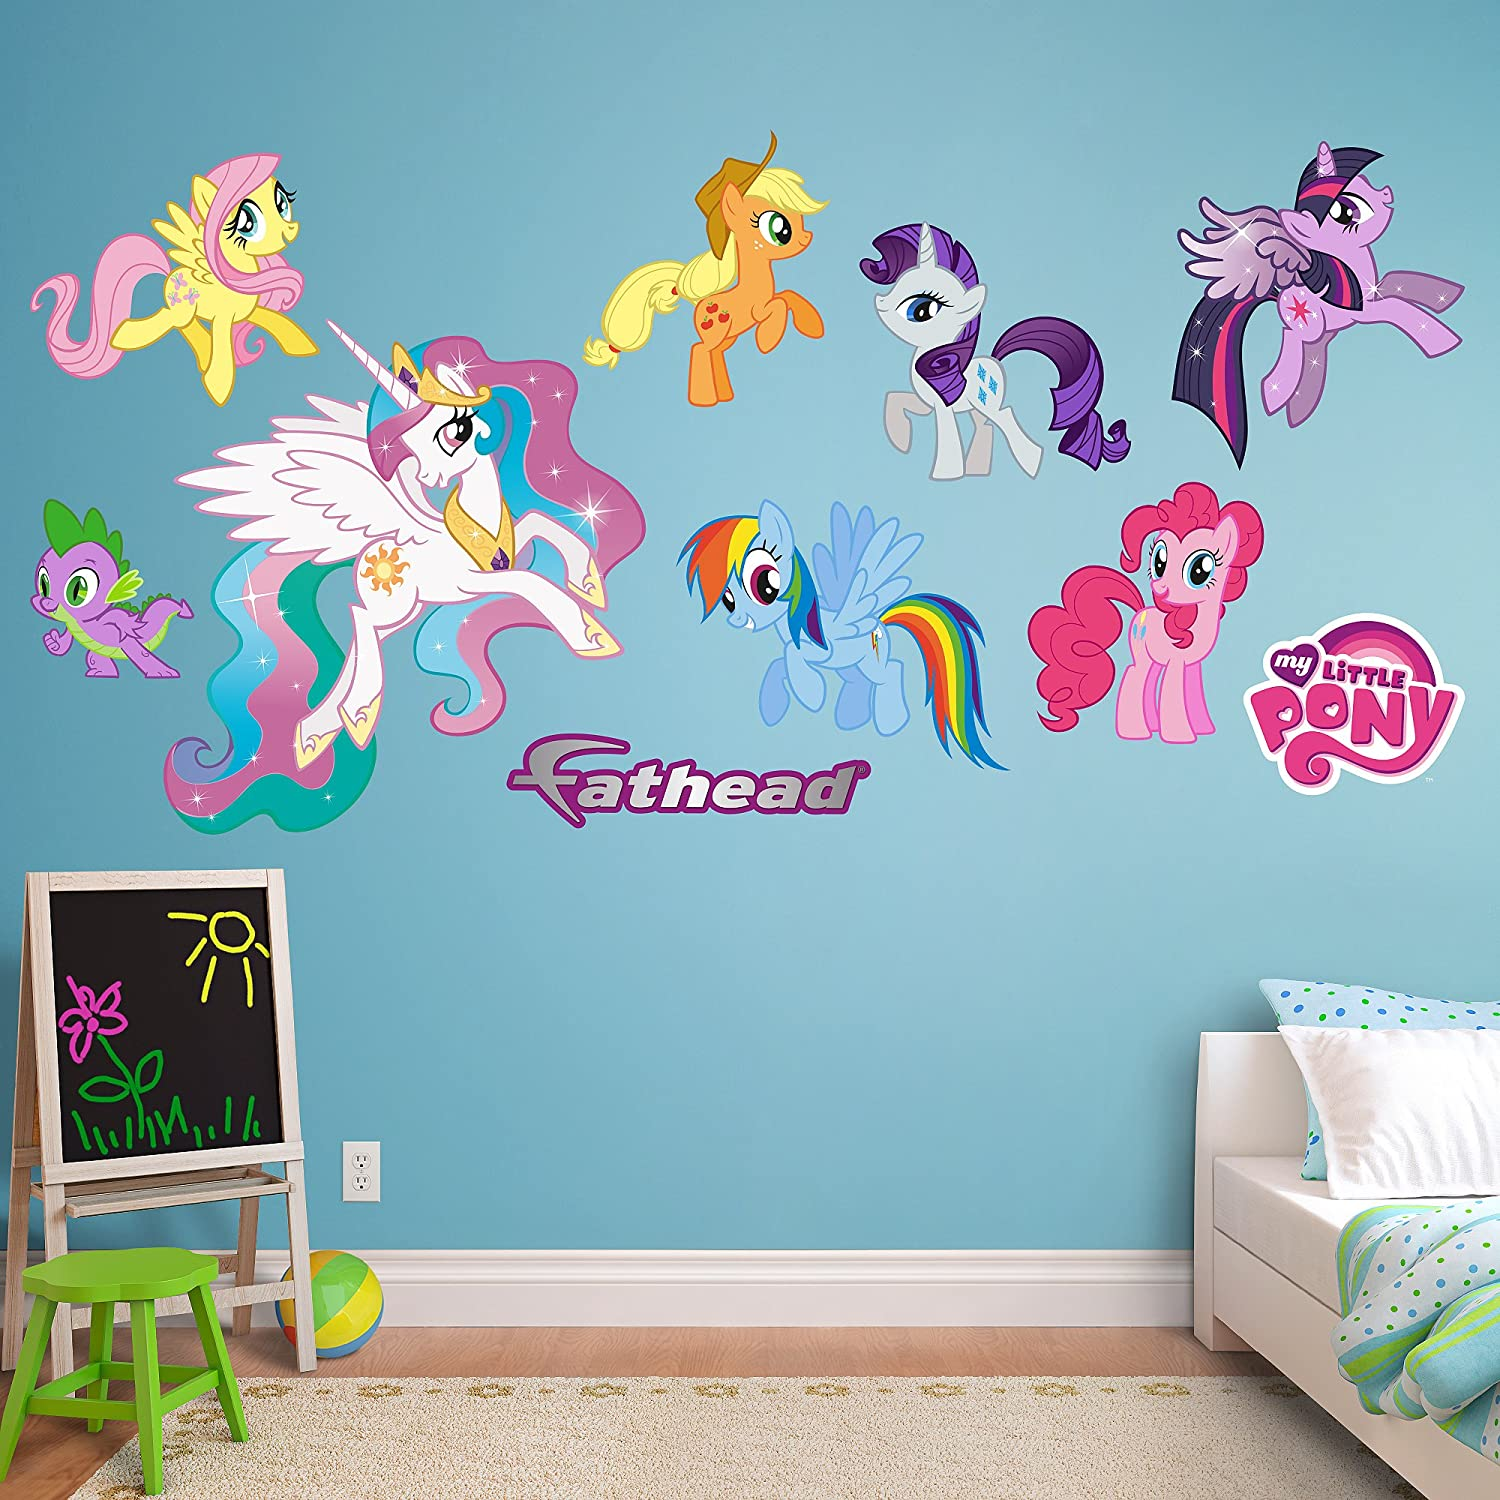 High Quality Amazon.com: Fathead My Little Pony Collection Vinyl Decals: Home U0026 Kitchen